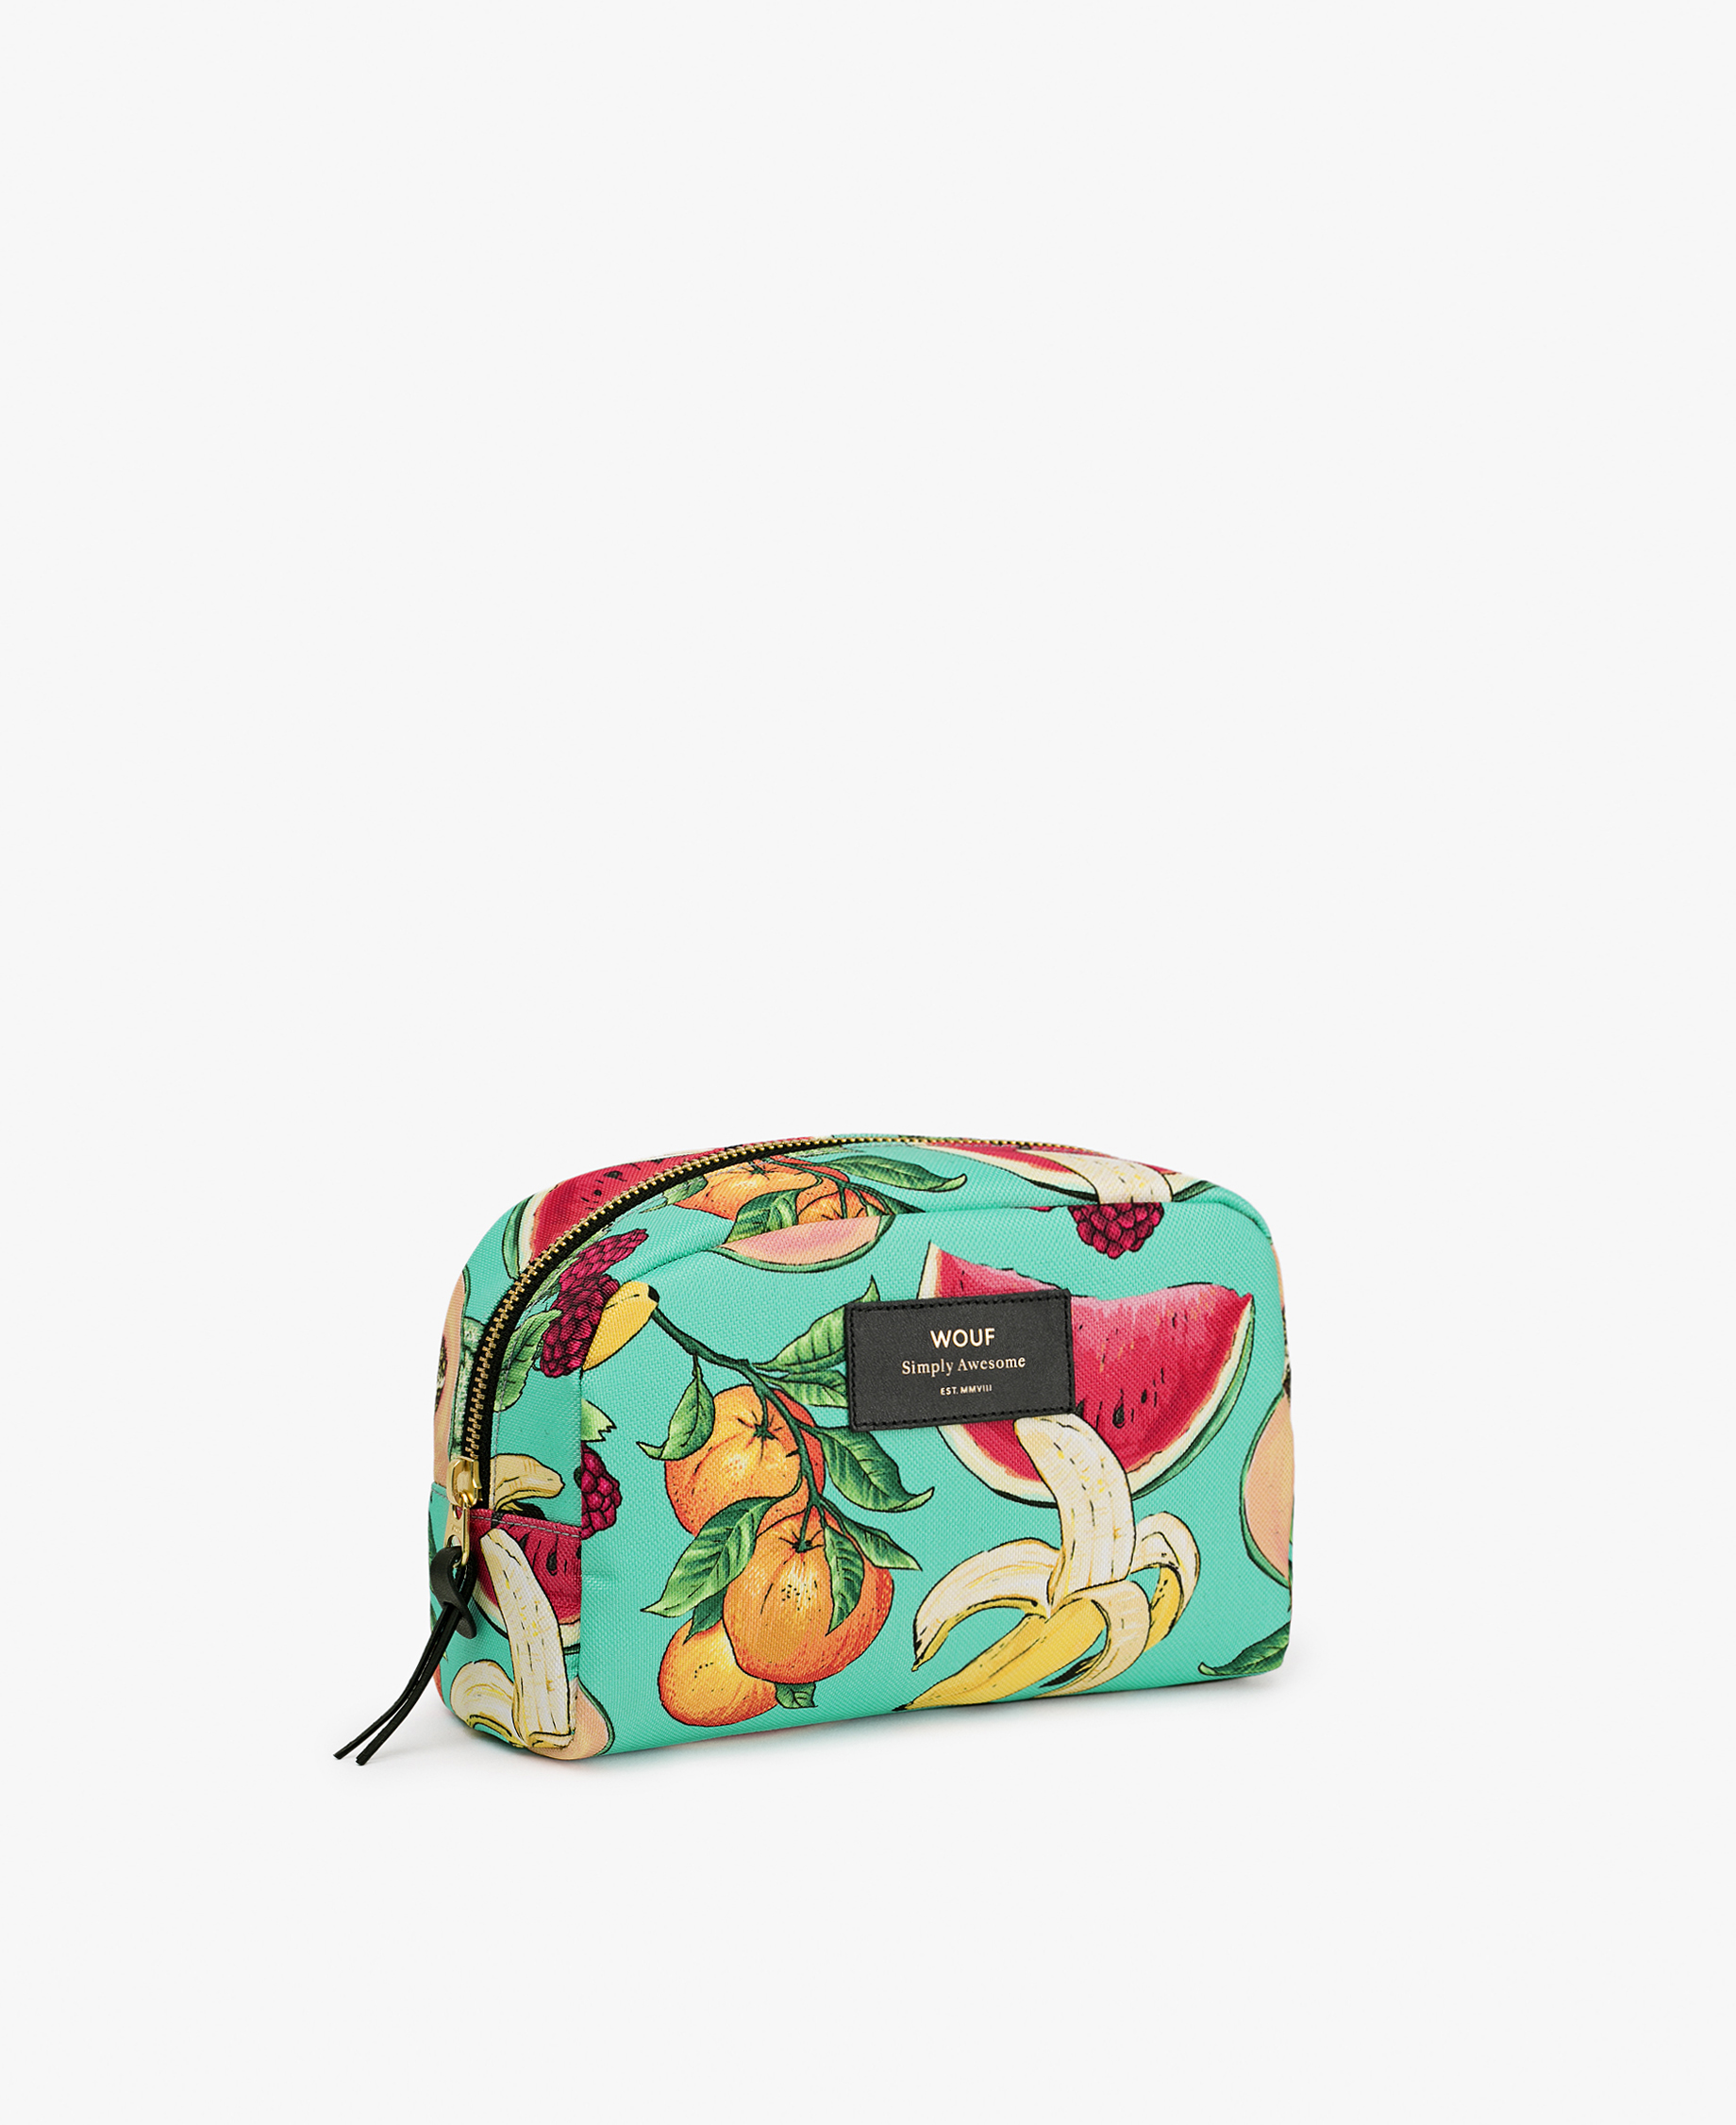 toiletry bag for young woman